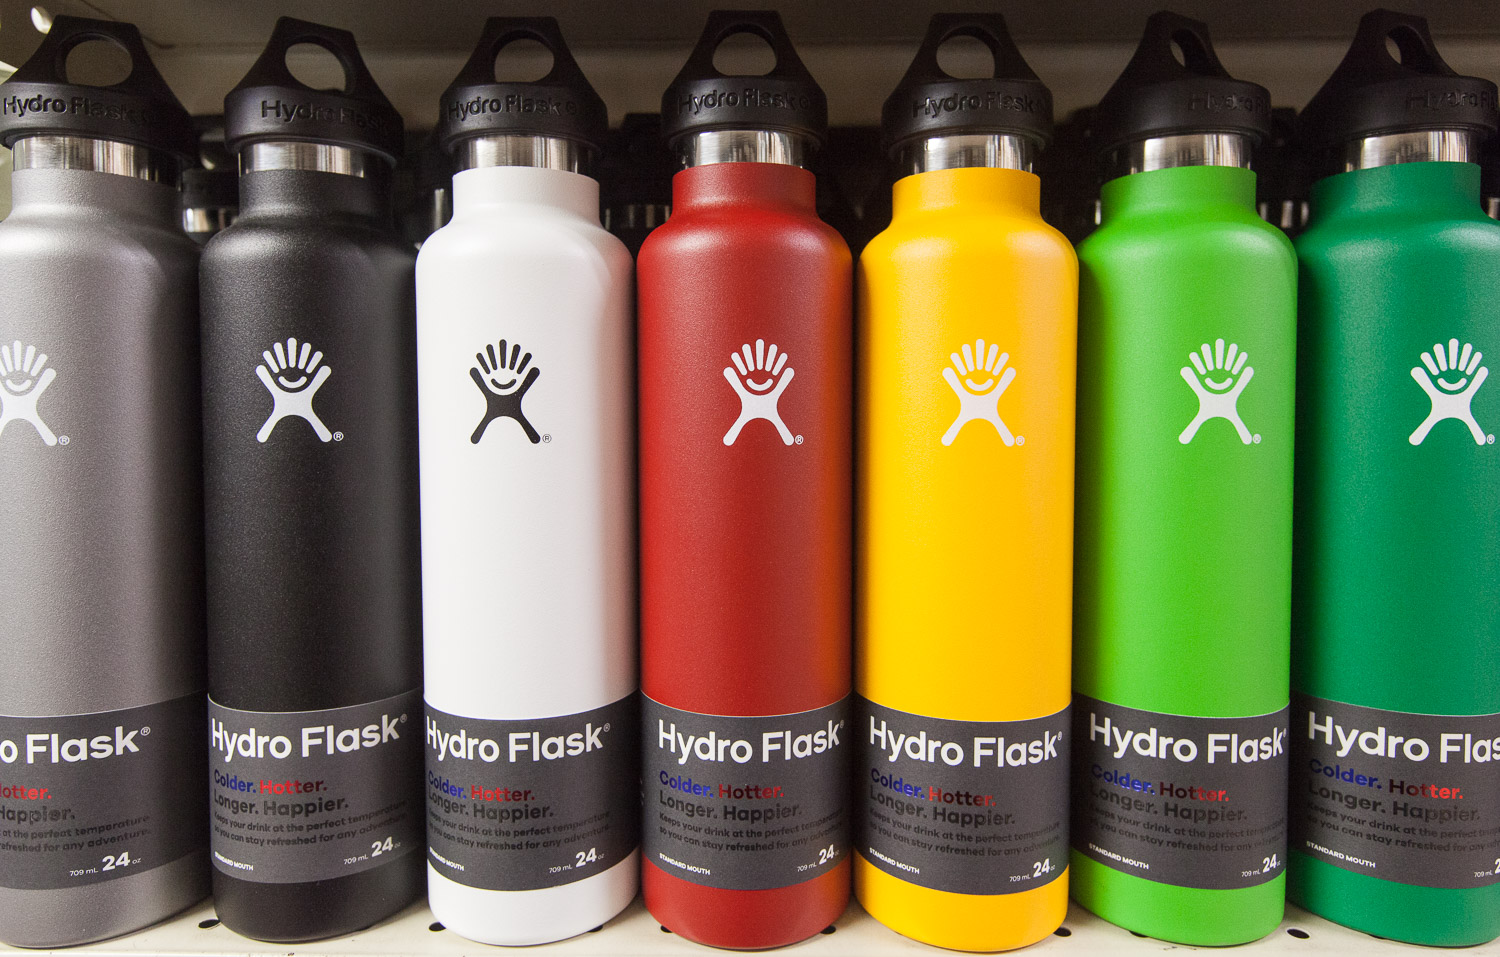 hydro-flask-display-mana-foods-maui.jpg